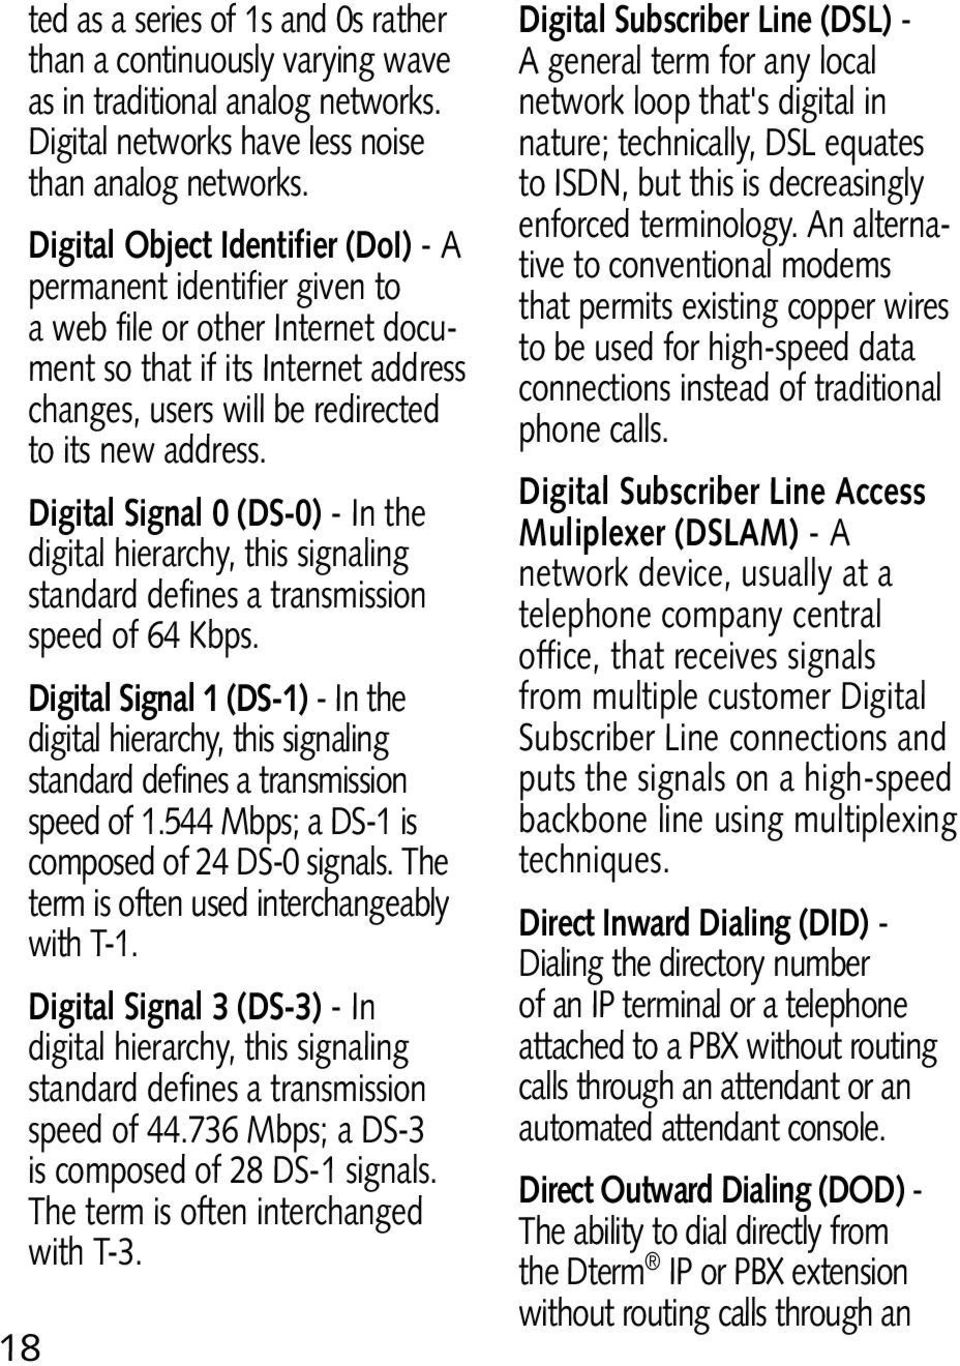 Digital Signal 0 (DS-0) - In the digital hierarchy, this signaling standard defines a transmission speed of 64 Kbps.